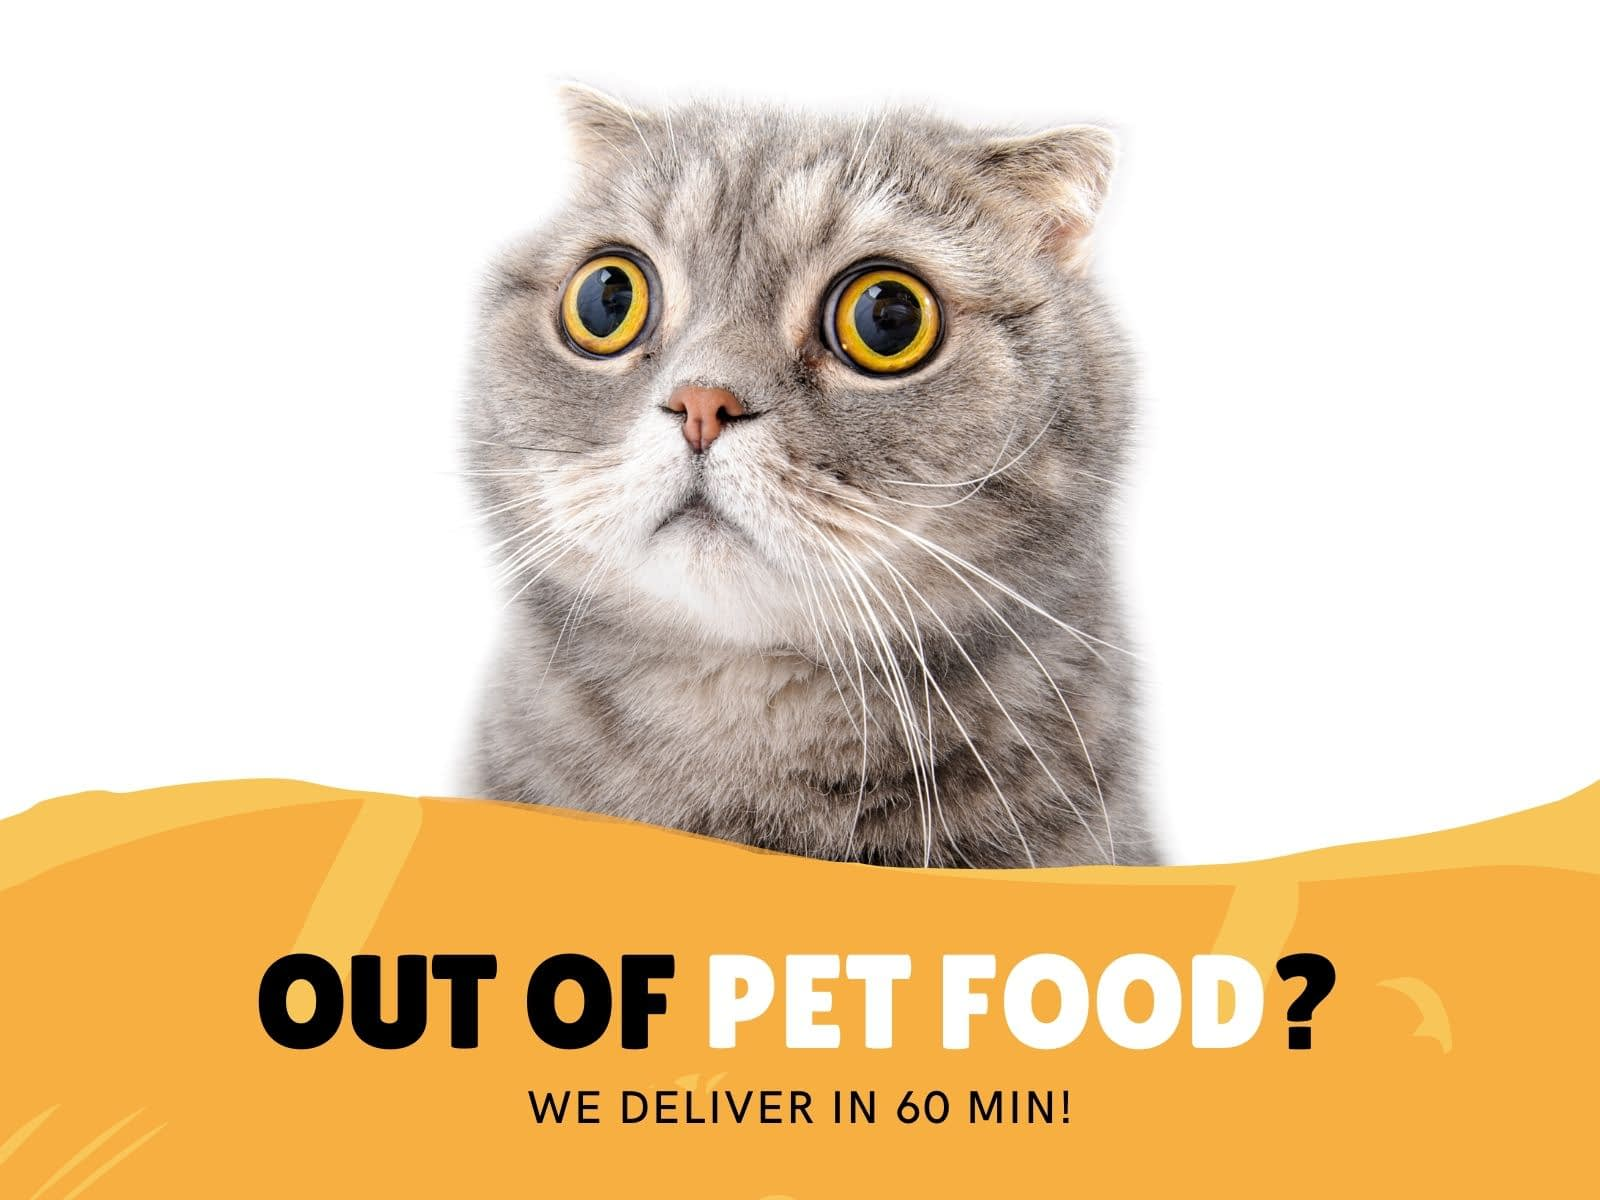 Cat with yellow eyes looks surprised and banner reads out of pet food? We deliver in 60 minutes